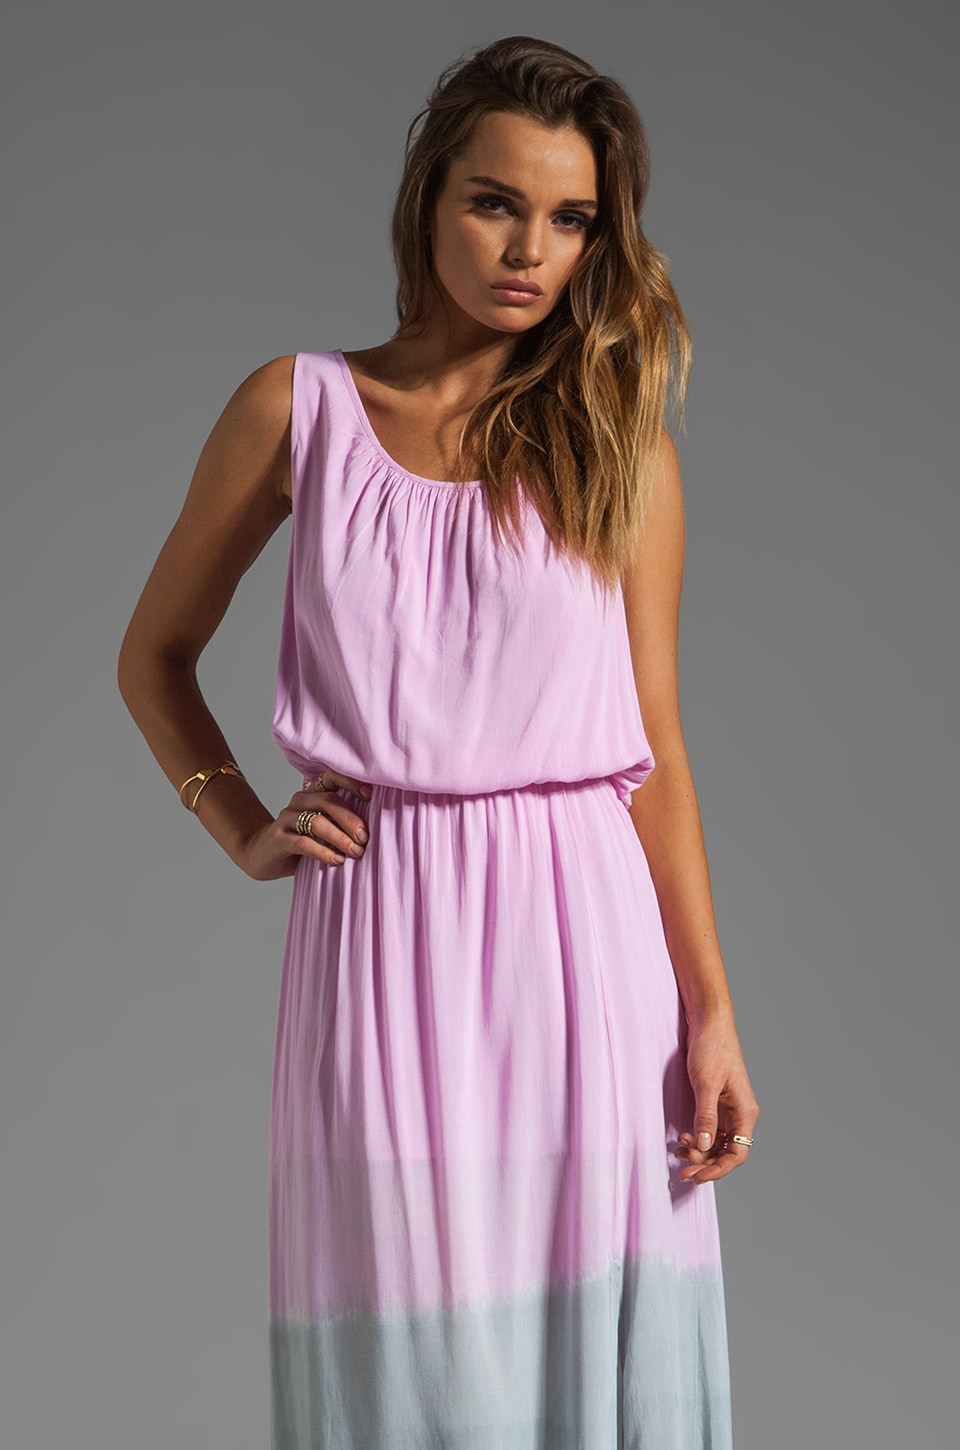 WOODLEIGH Quinn Dress in Blush